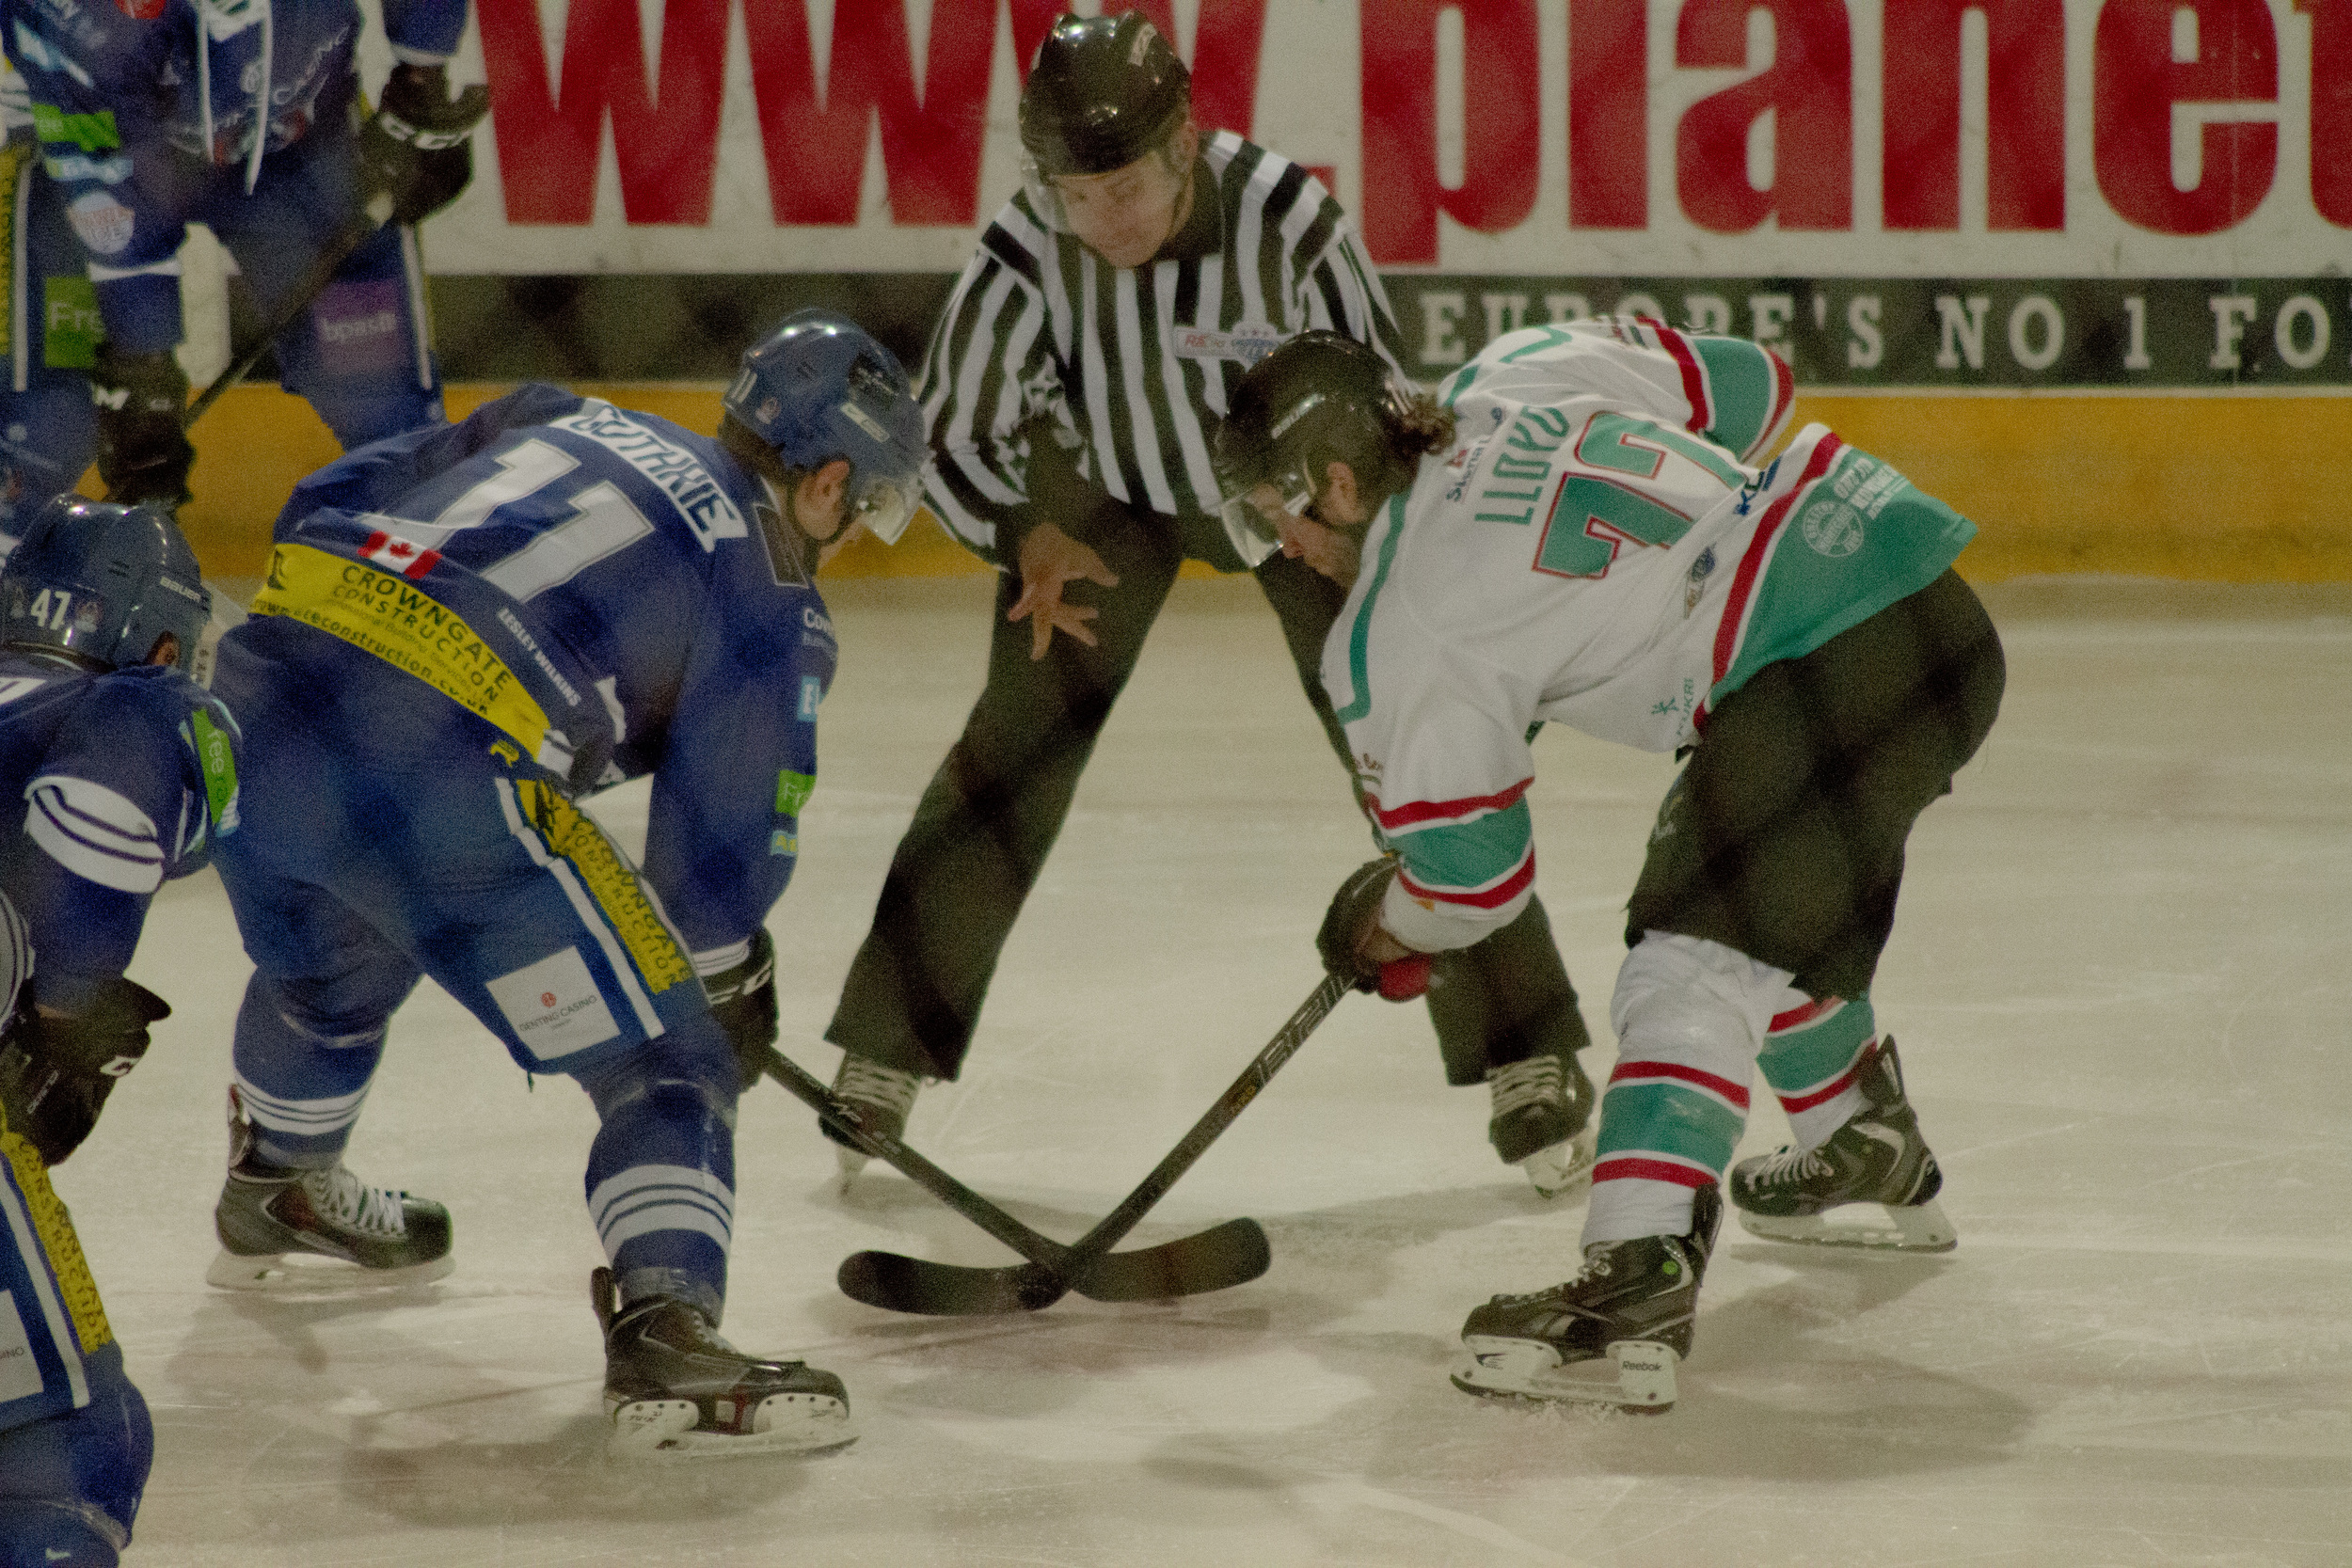 Face off. Both opposing players wait for the puck to be dropped in to start play.